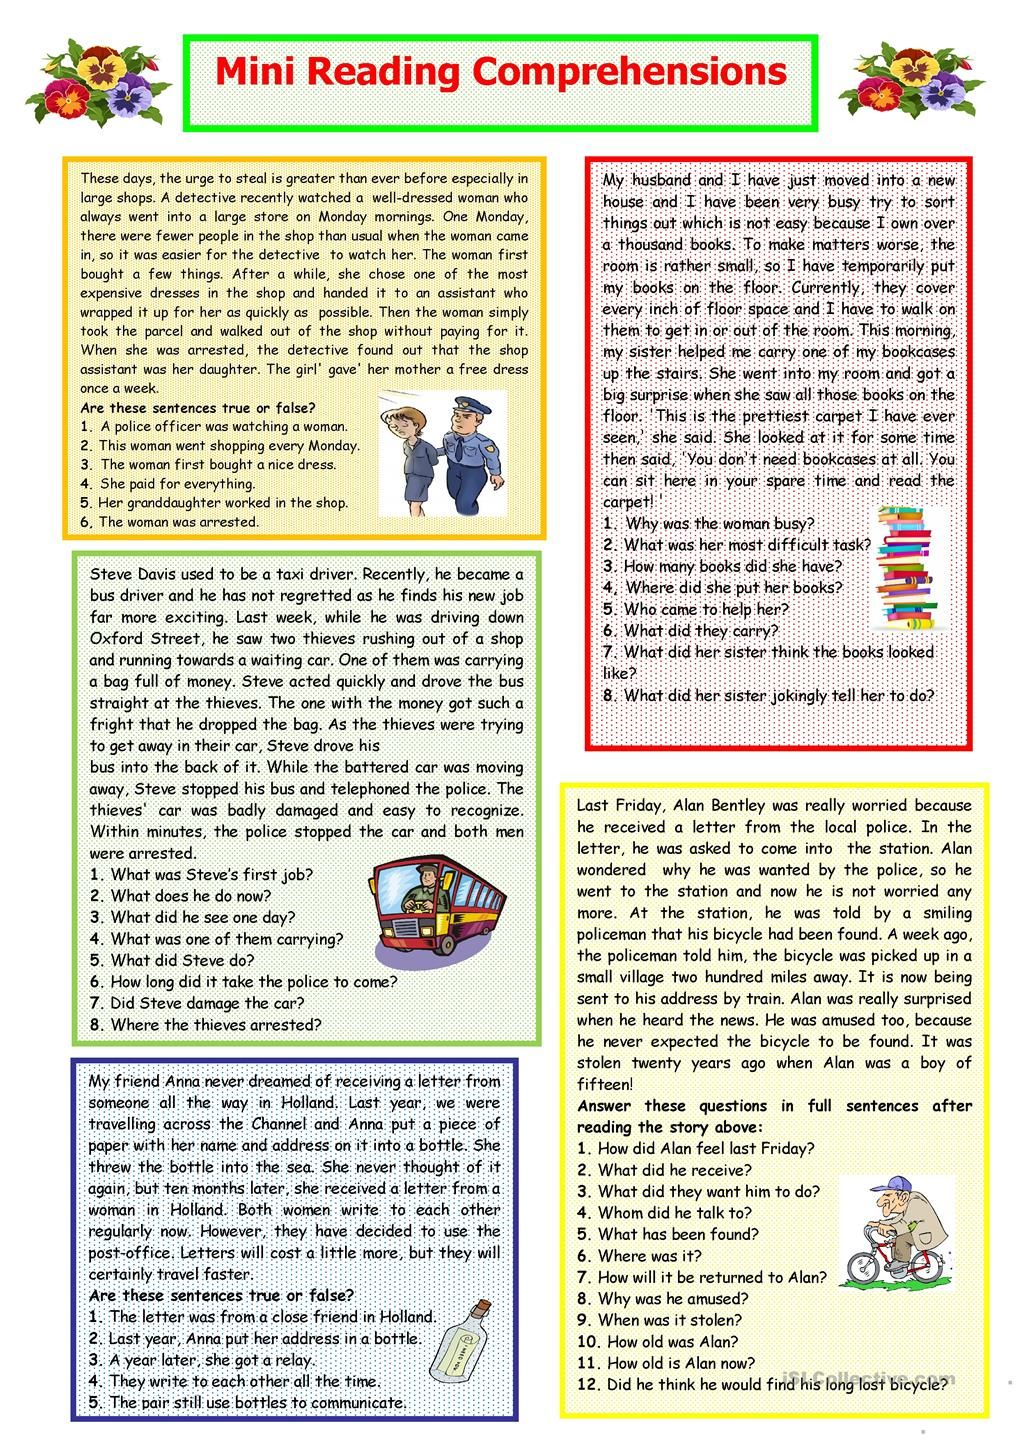 Short reading comprehensions 2 esl worksheets of the day mini reading comprehensions robcynllc Image collections